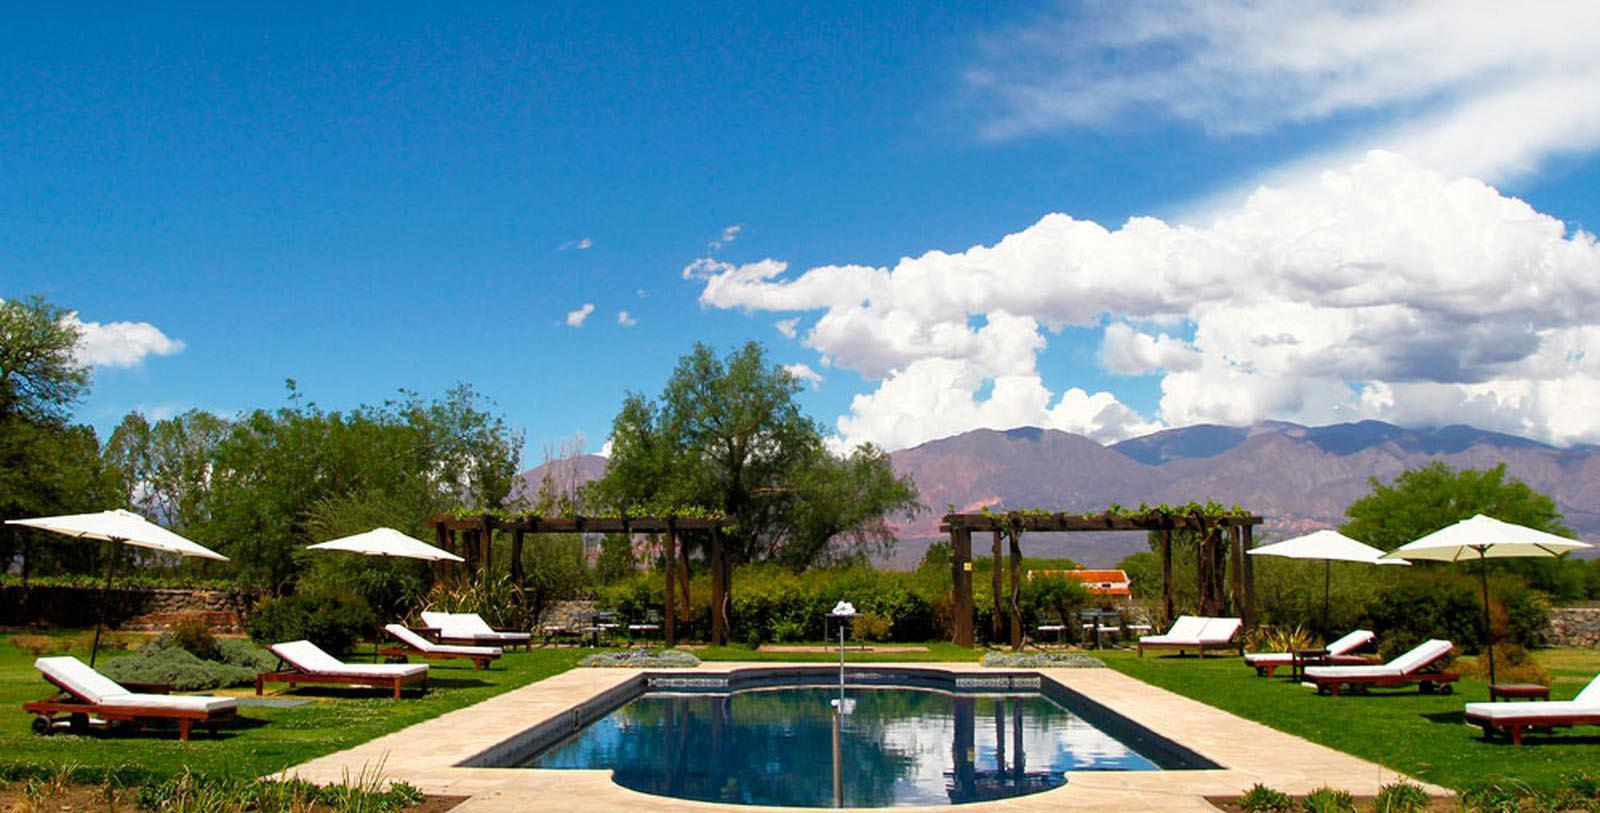 Image of Pool Patios de Cafayate, 1740, Member of Historic Hotels Worldwide, in Cafayate, Argentina, Explore